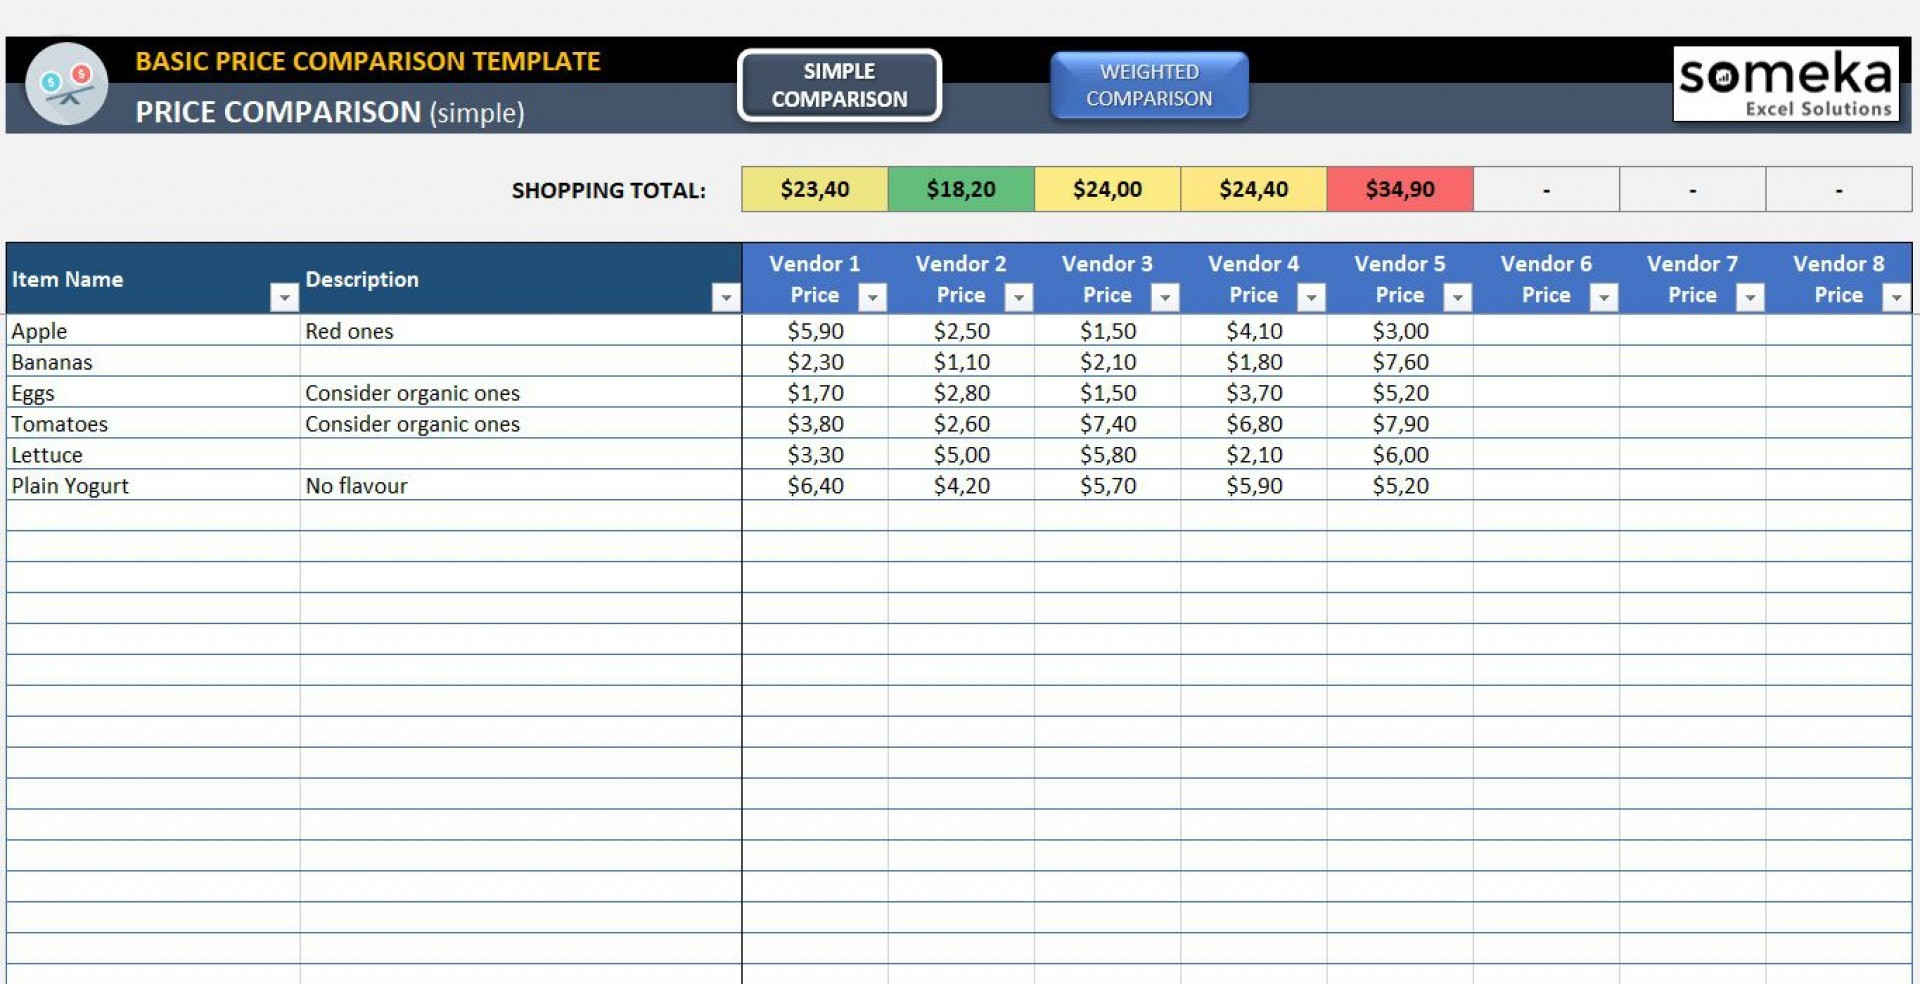 001 Outstanding Price Comparison Excel Template Idea  Competitor Download1920